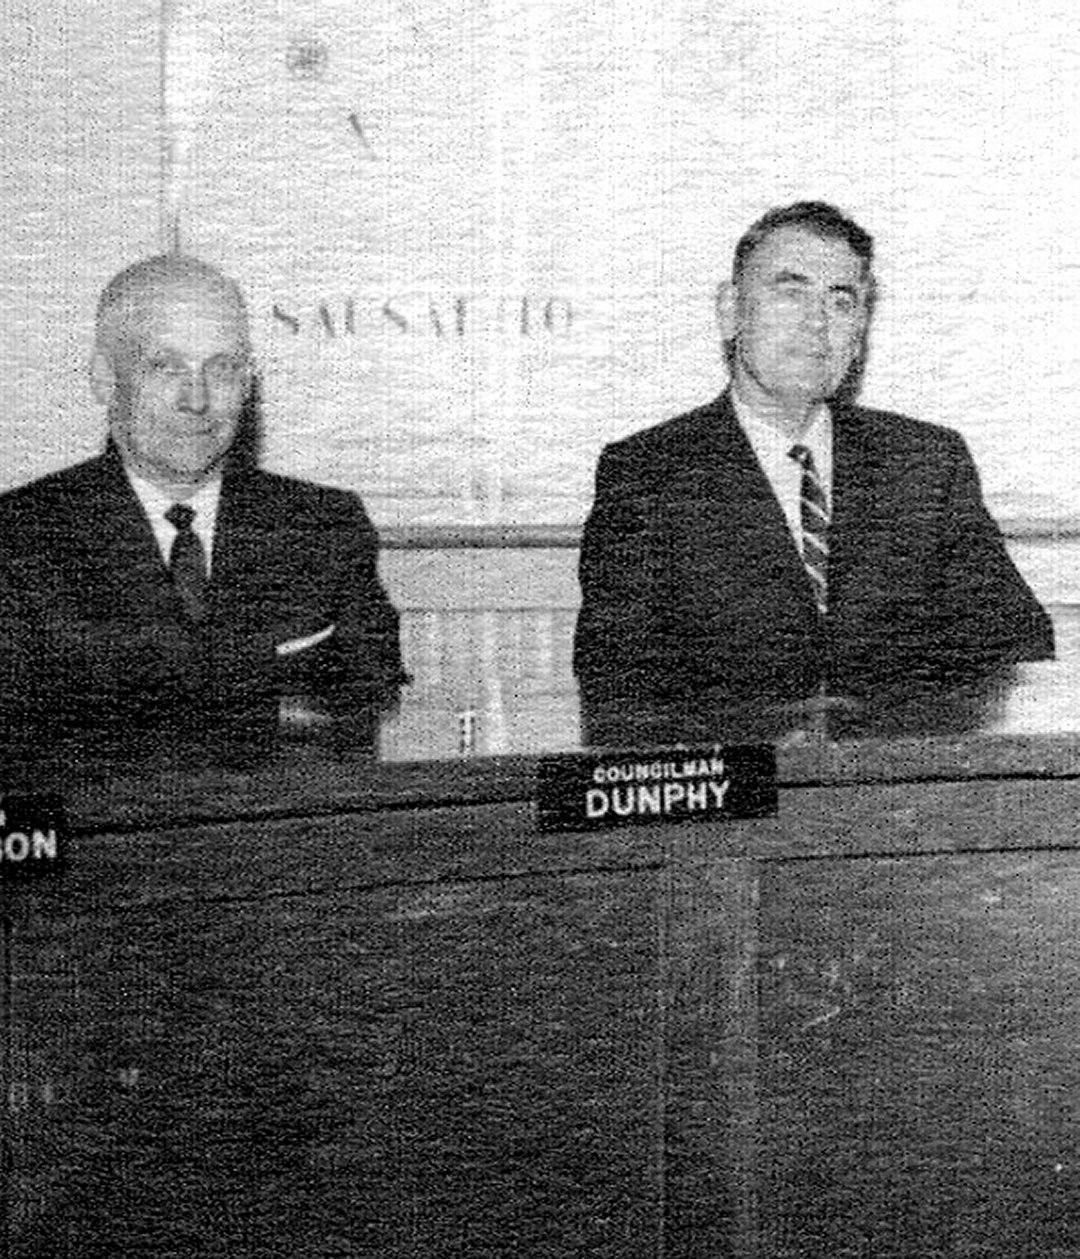 George Gabrielson (l.) with fellow City Councilman and park enthusiast Earl Dunphy. Photo courtesy of Sausalito Historical Society.